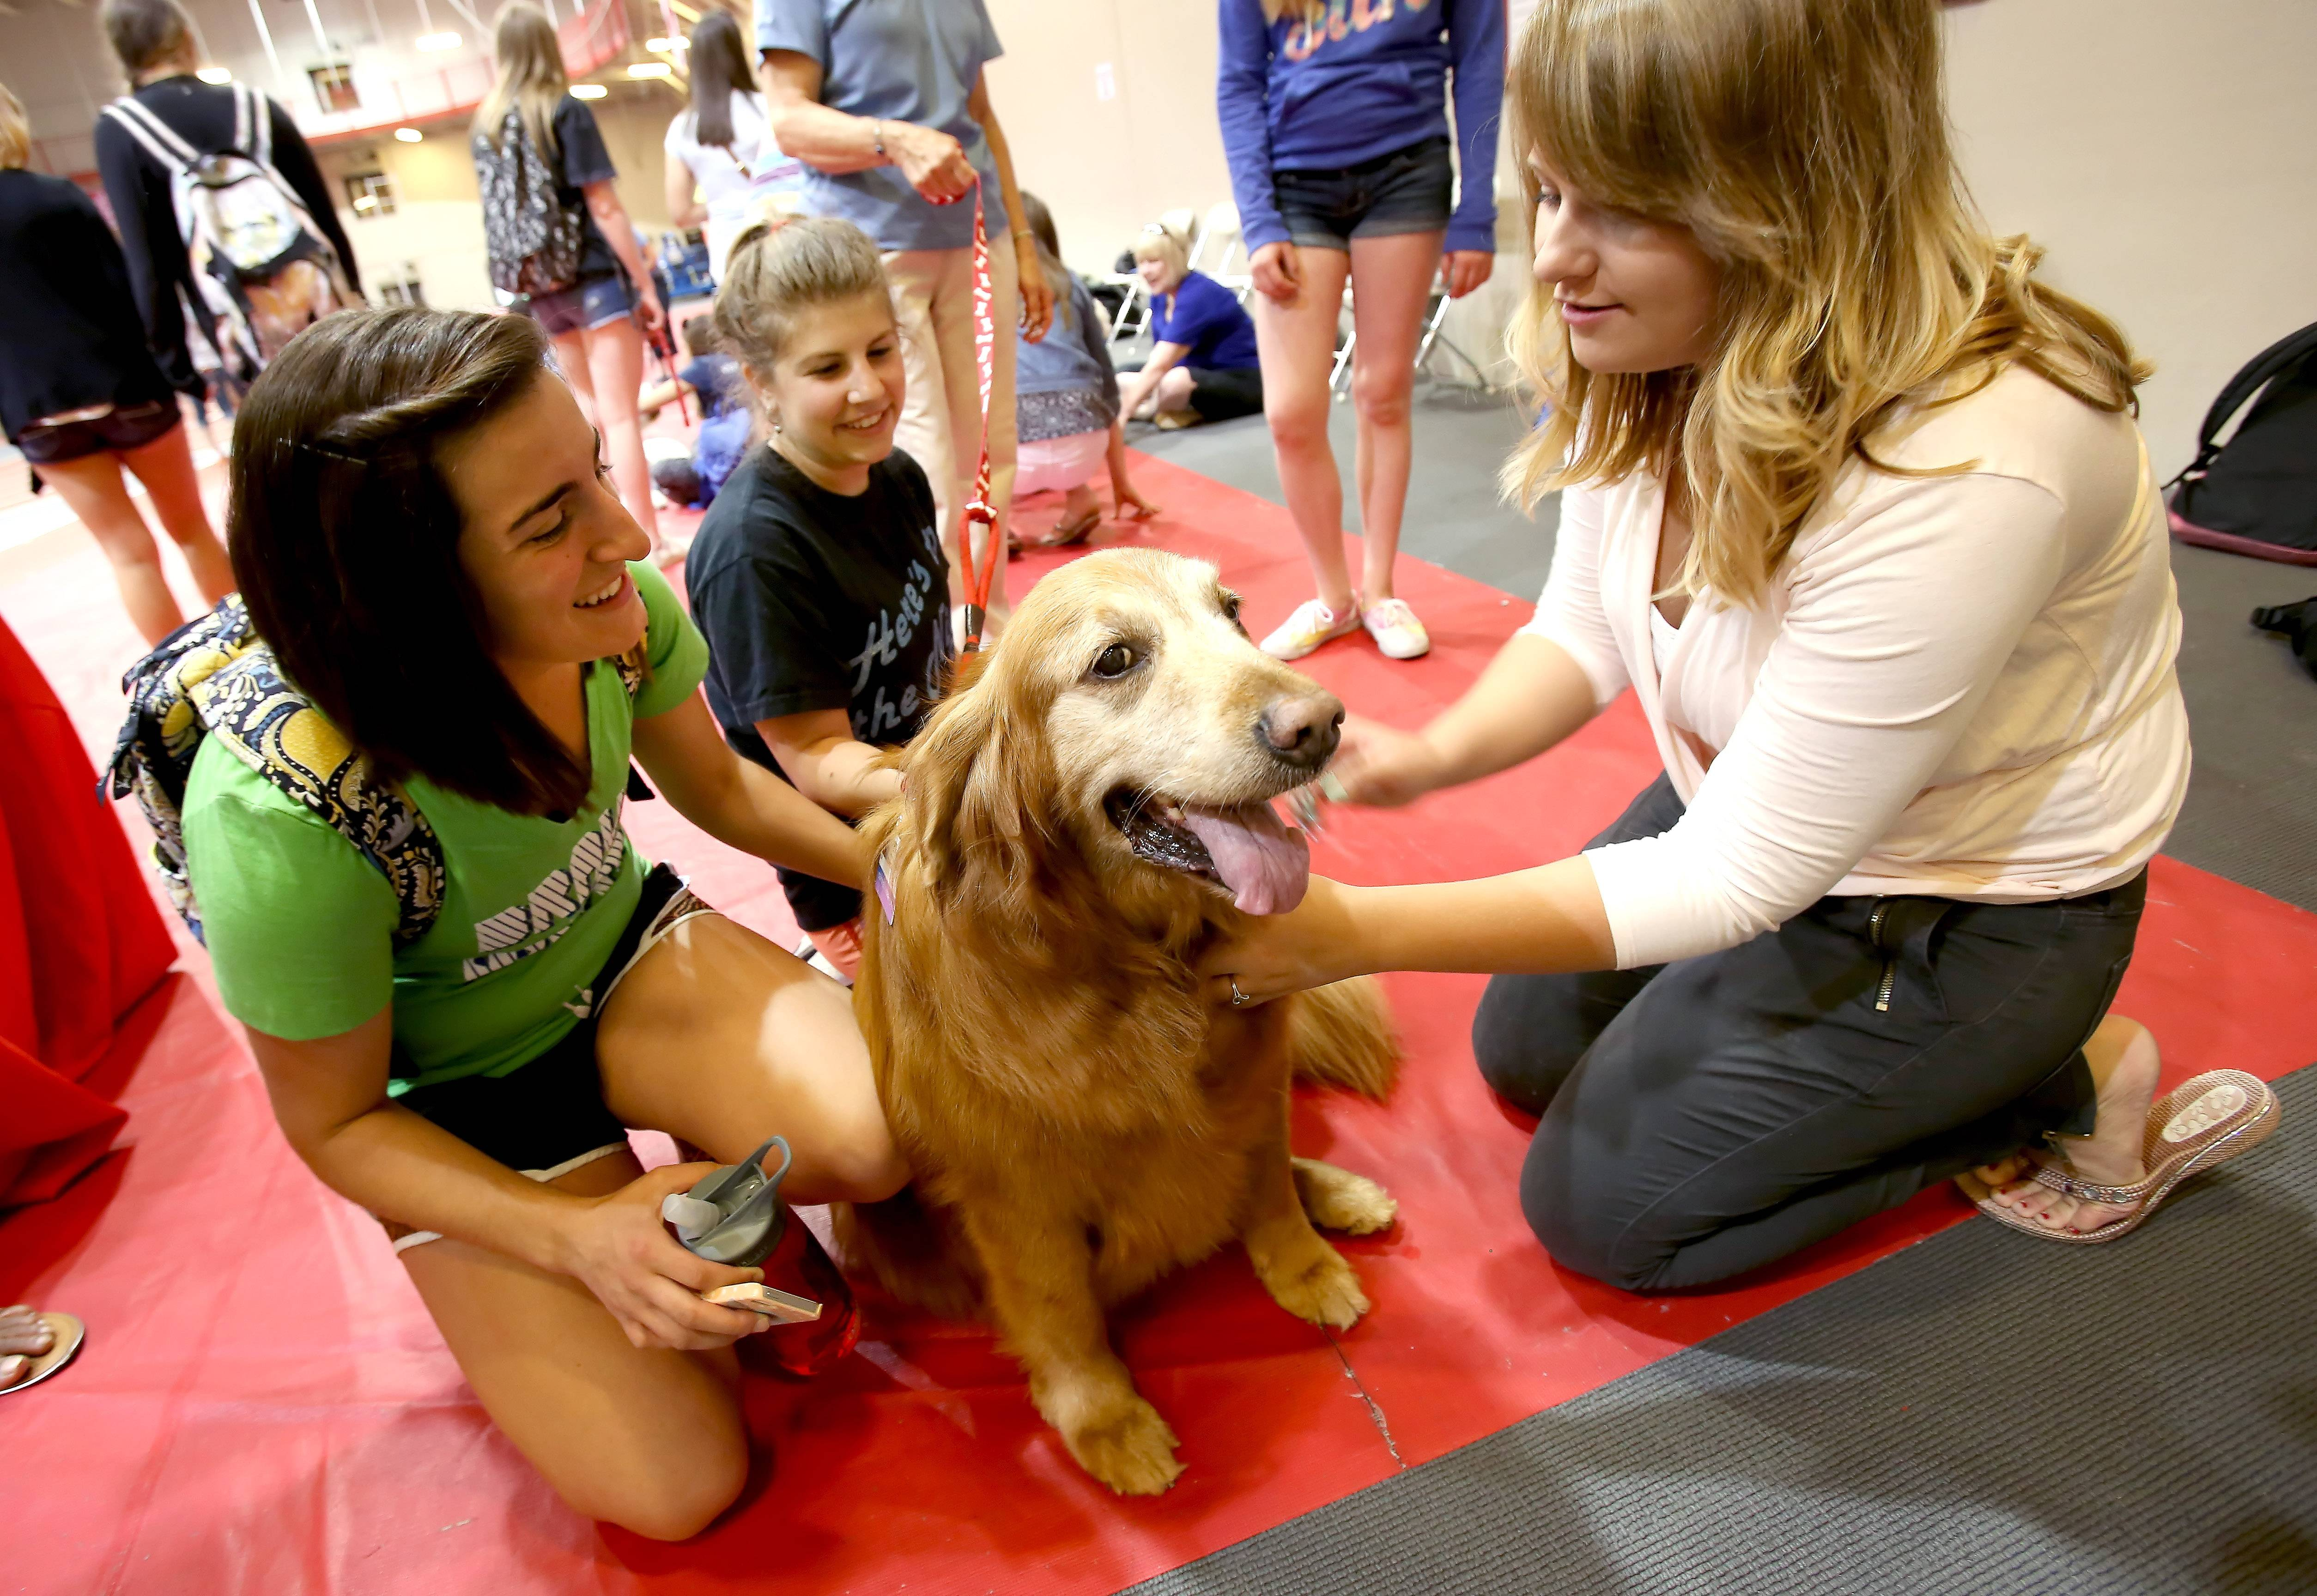 Students Melissa Musto, Nicolette Natalino and Julia Jones pet Quincy, a golden retriever, as part of the Dyson Dog Days at North Central College in Naperville.